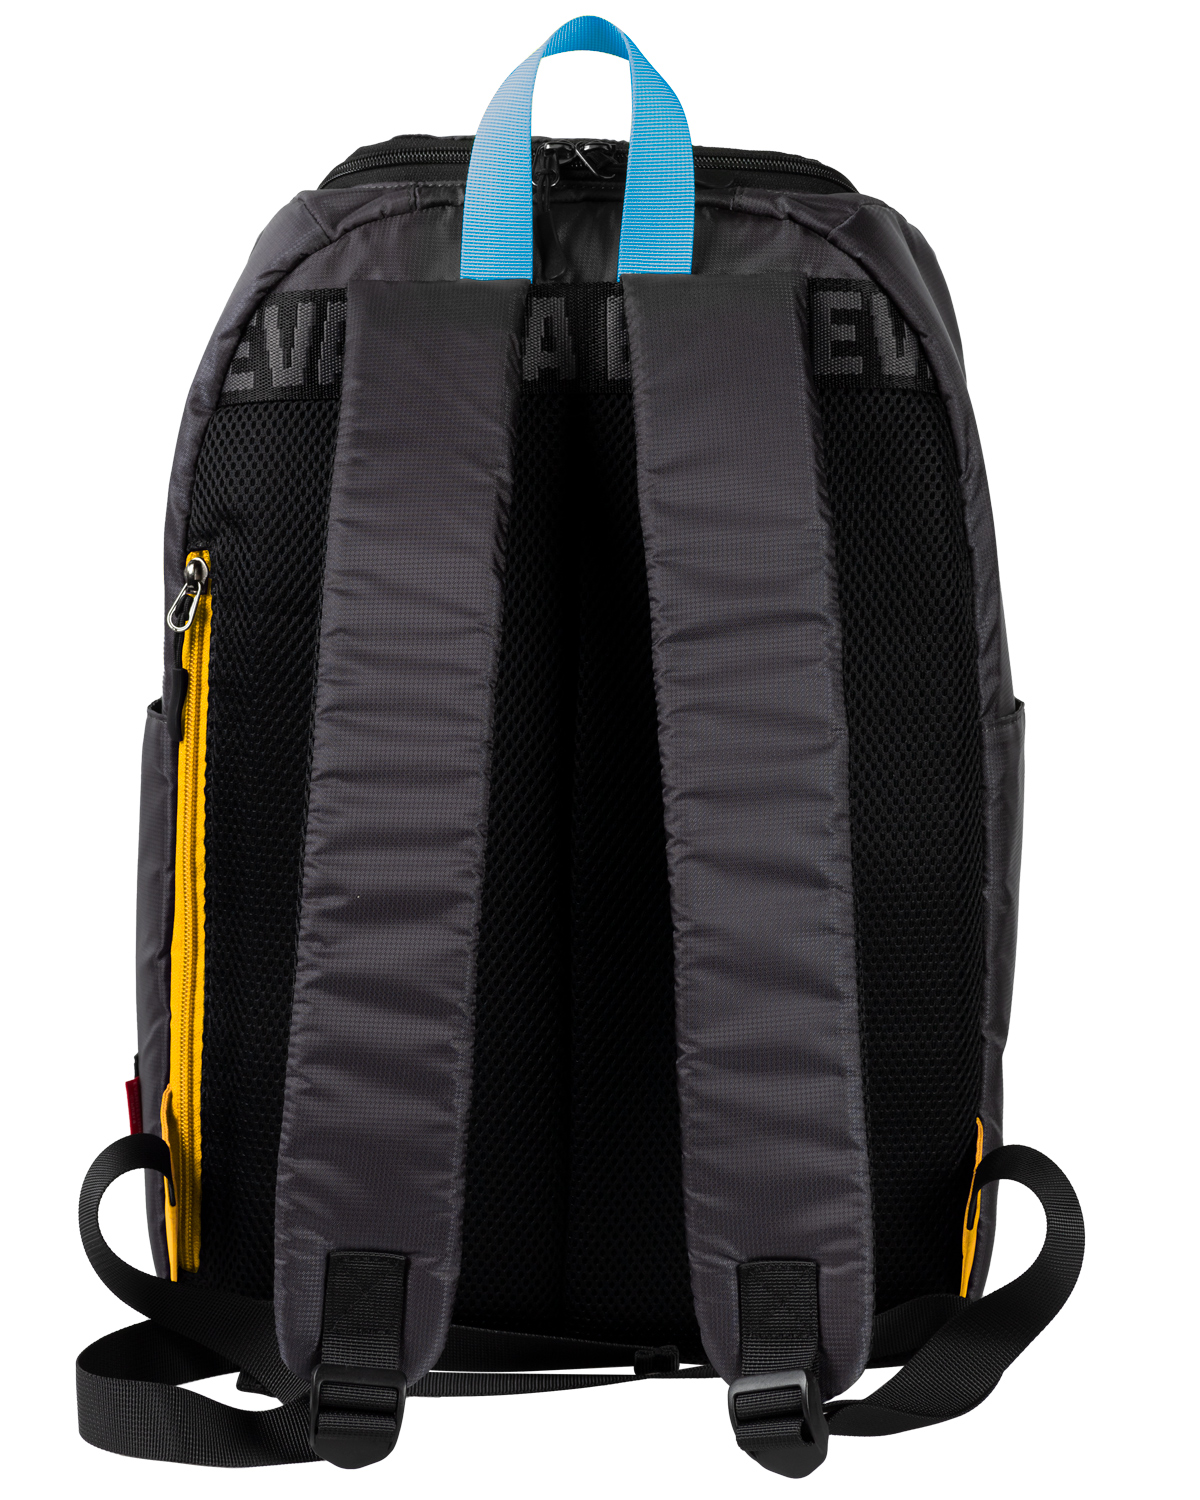 EVANGELION CORE DAY PACK by FIRE FIRST (EVA-00 MODEL)